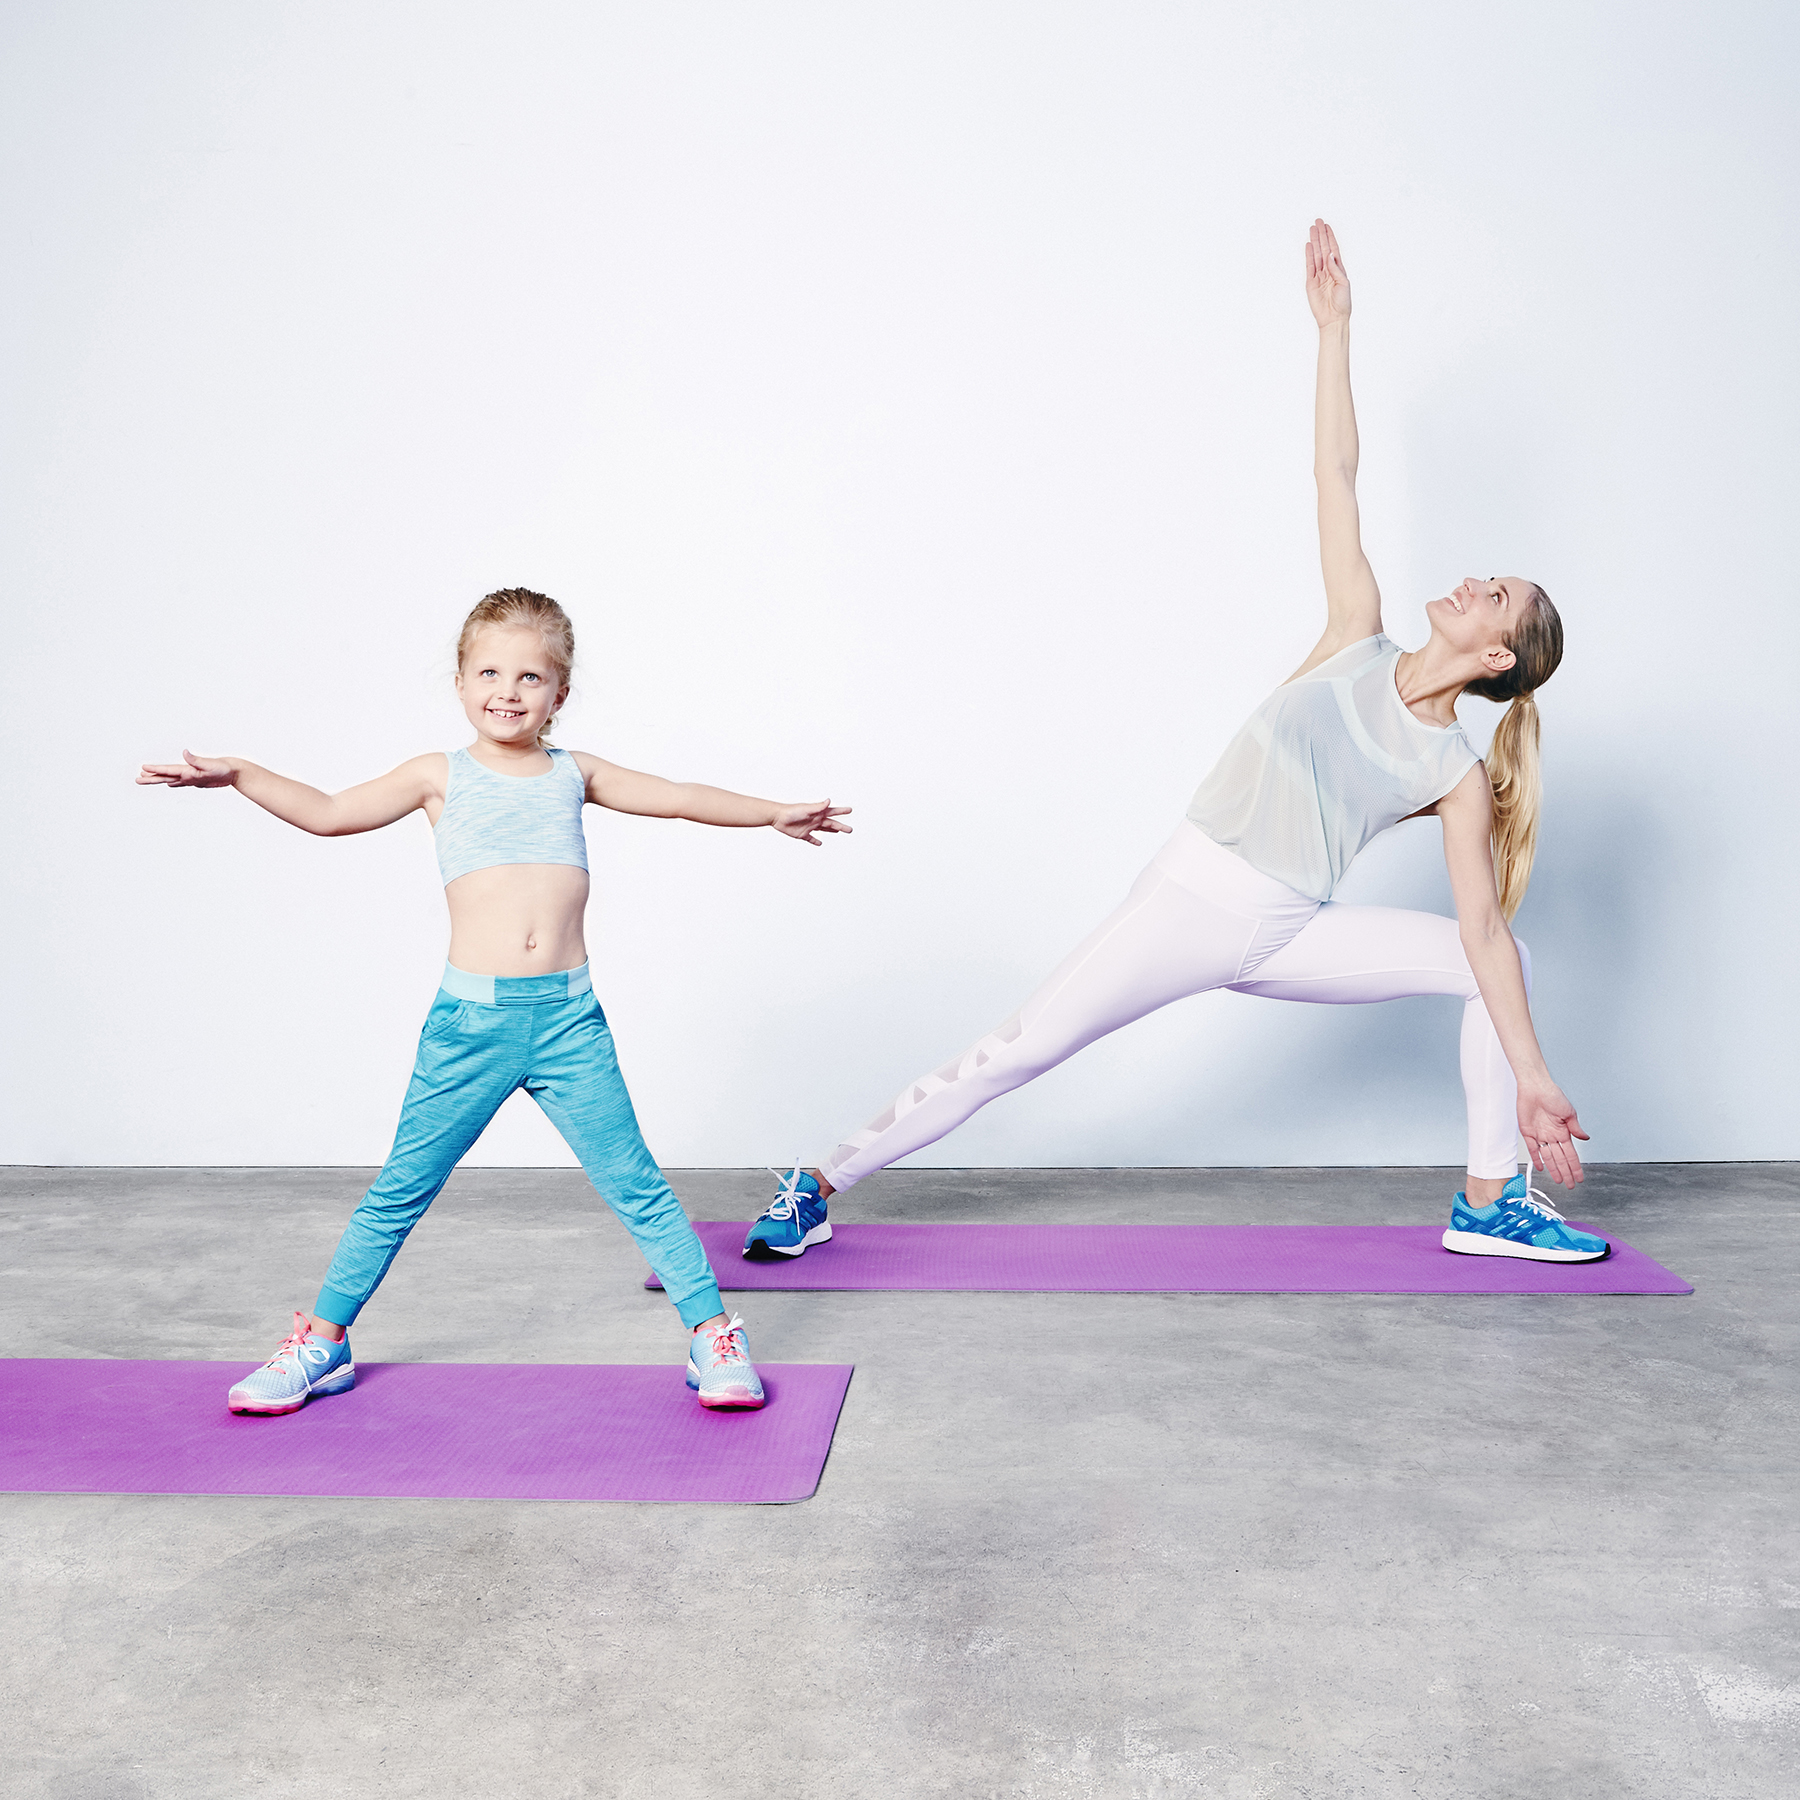 5 tips to help children develop healthy habits - mommy and me workout | Marshalls for health and wellness